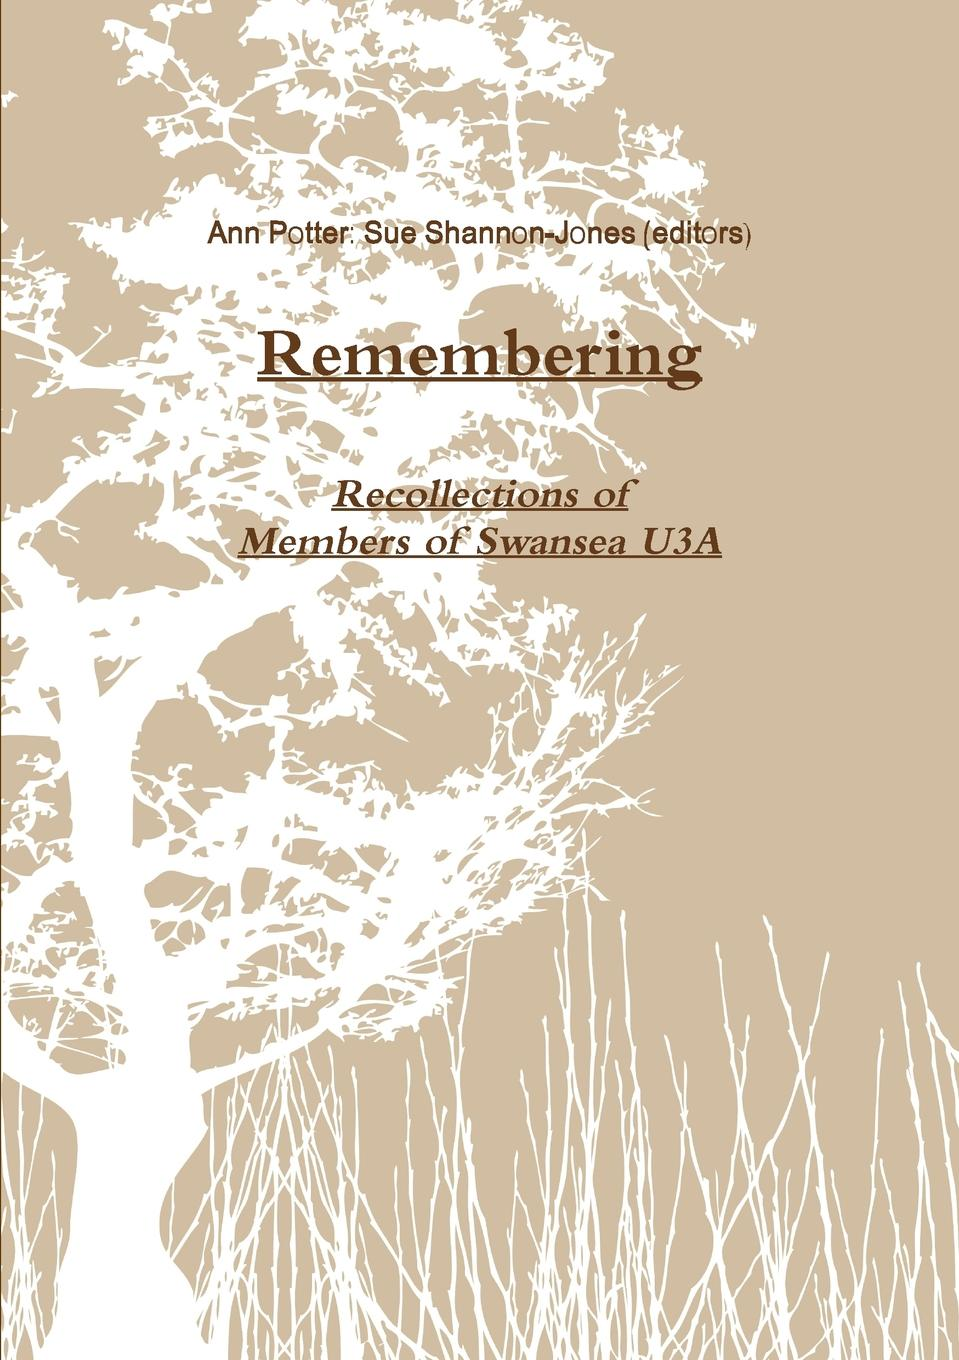 Ann Potter (editor), Sue Shannon-Jones (editor) Remembering. An Anthology of Recollections цены